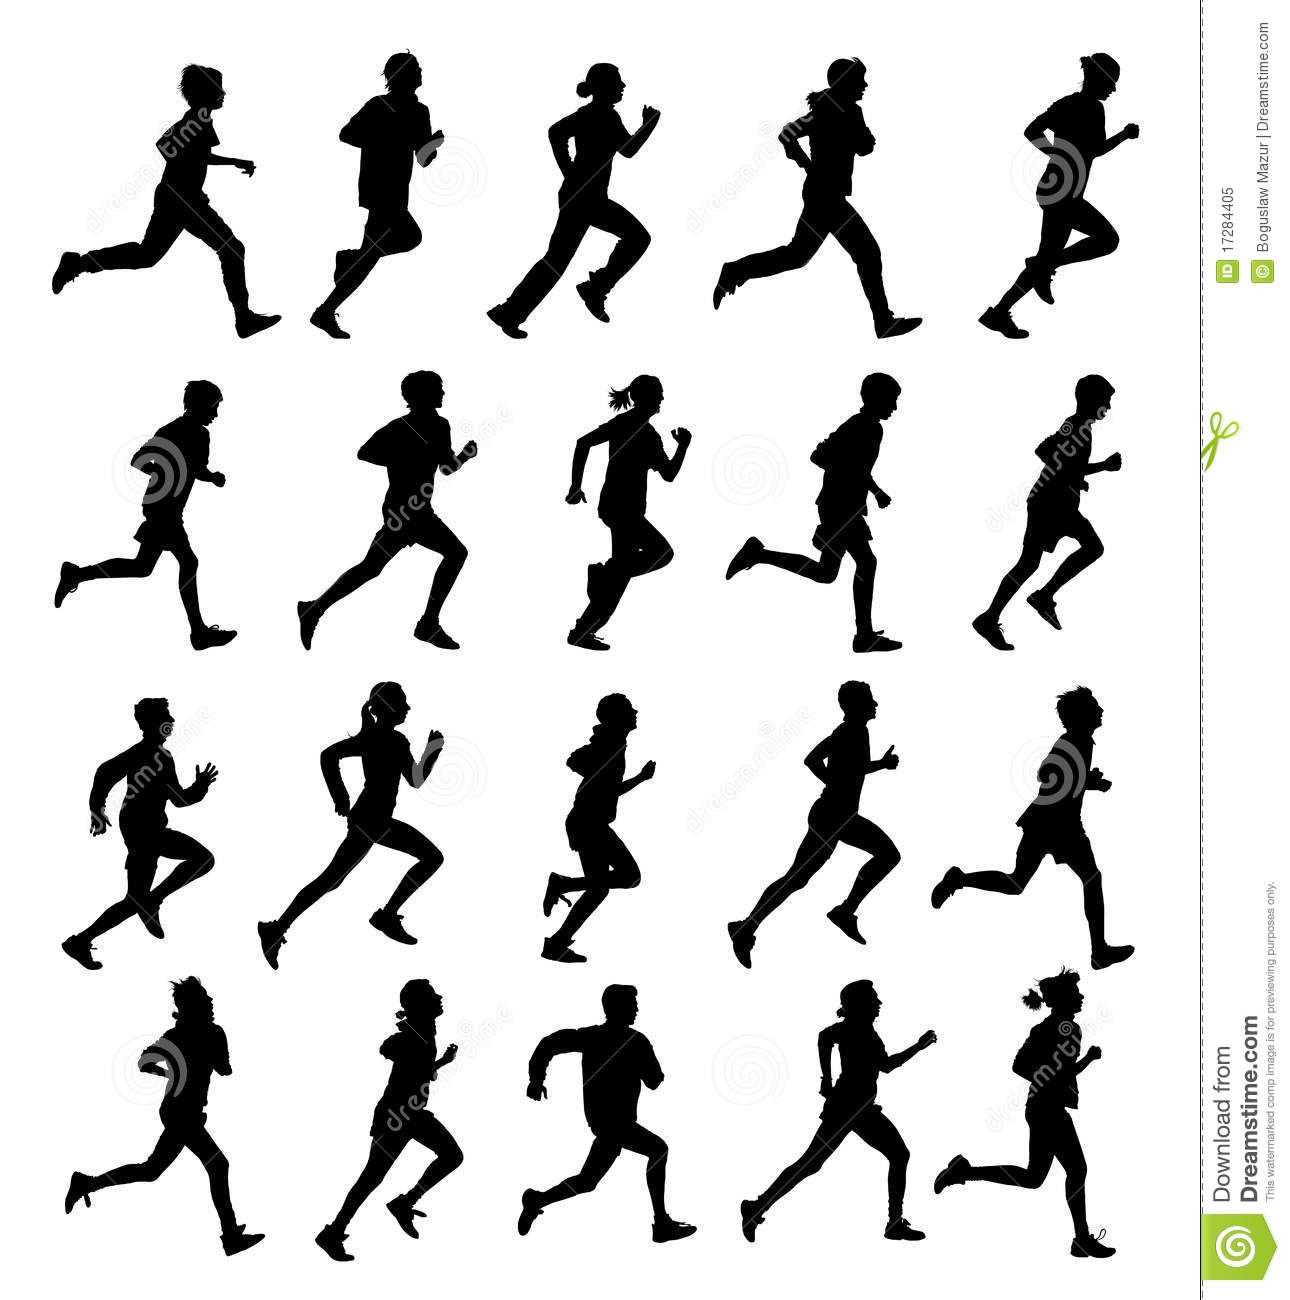 Running People Royalty Free Stock Photo - Image: 17284405